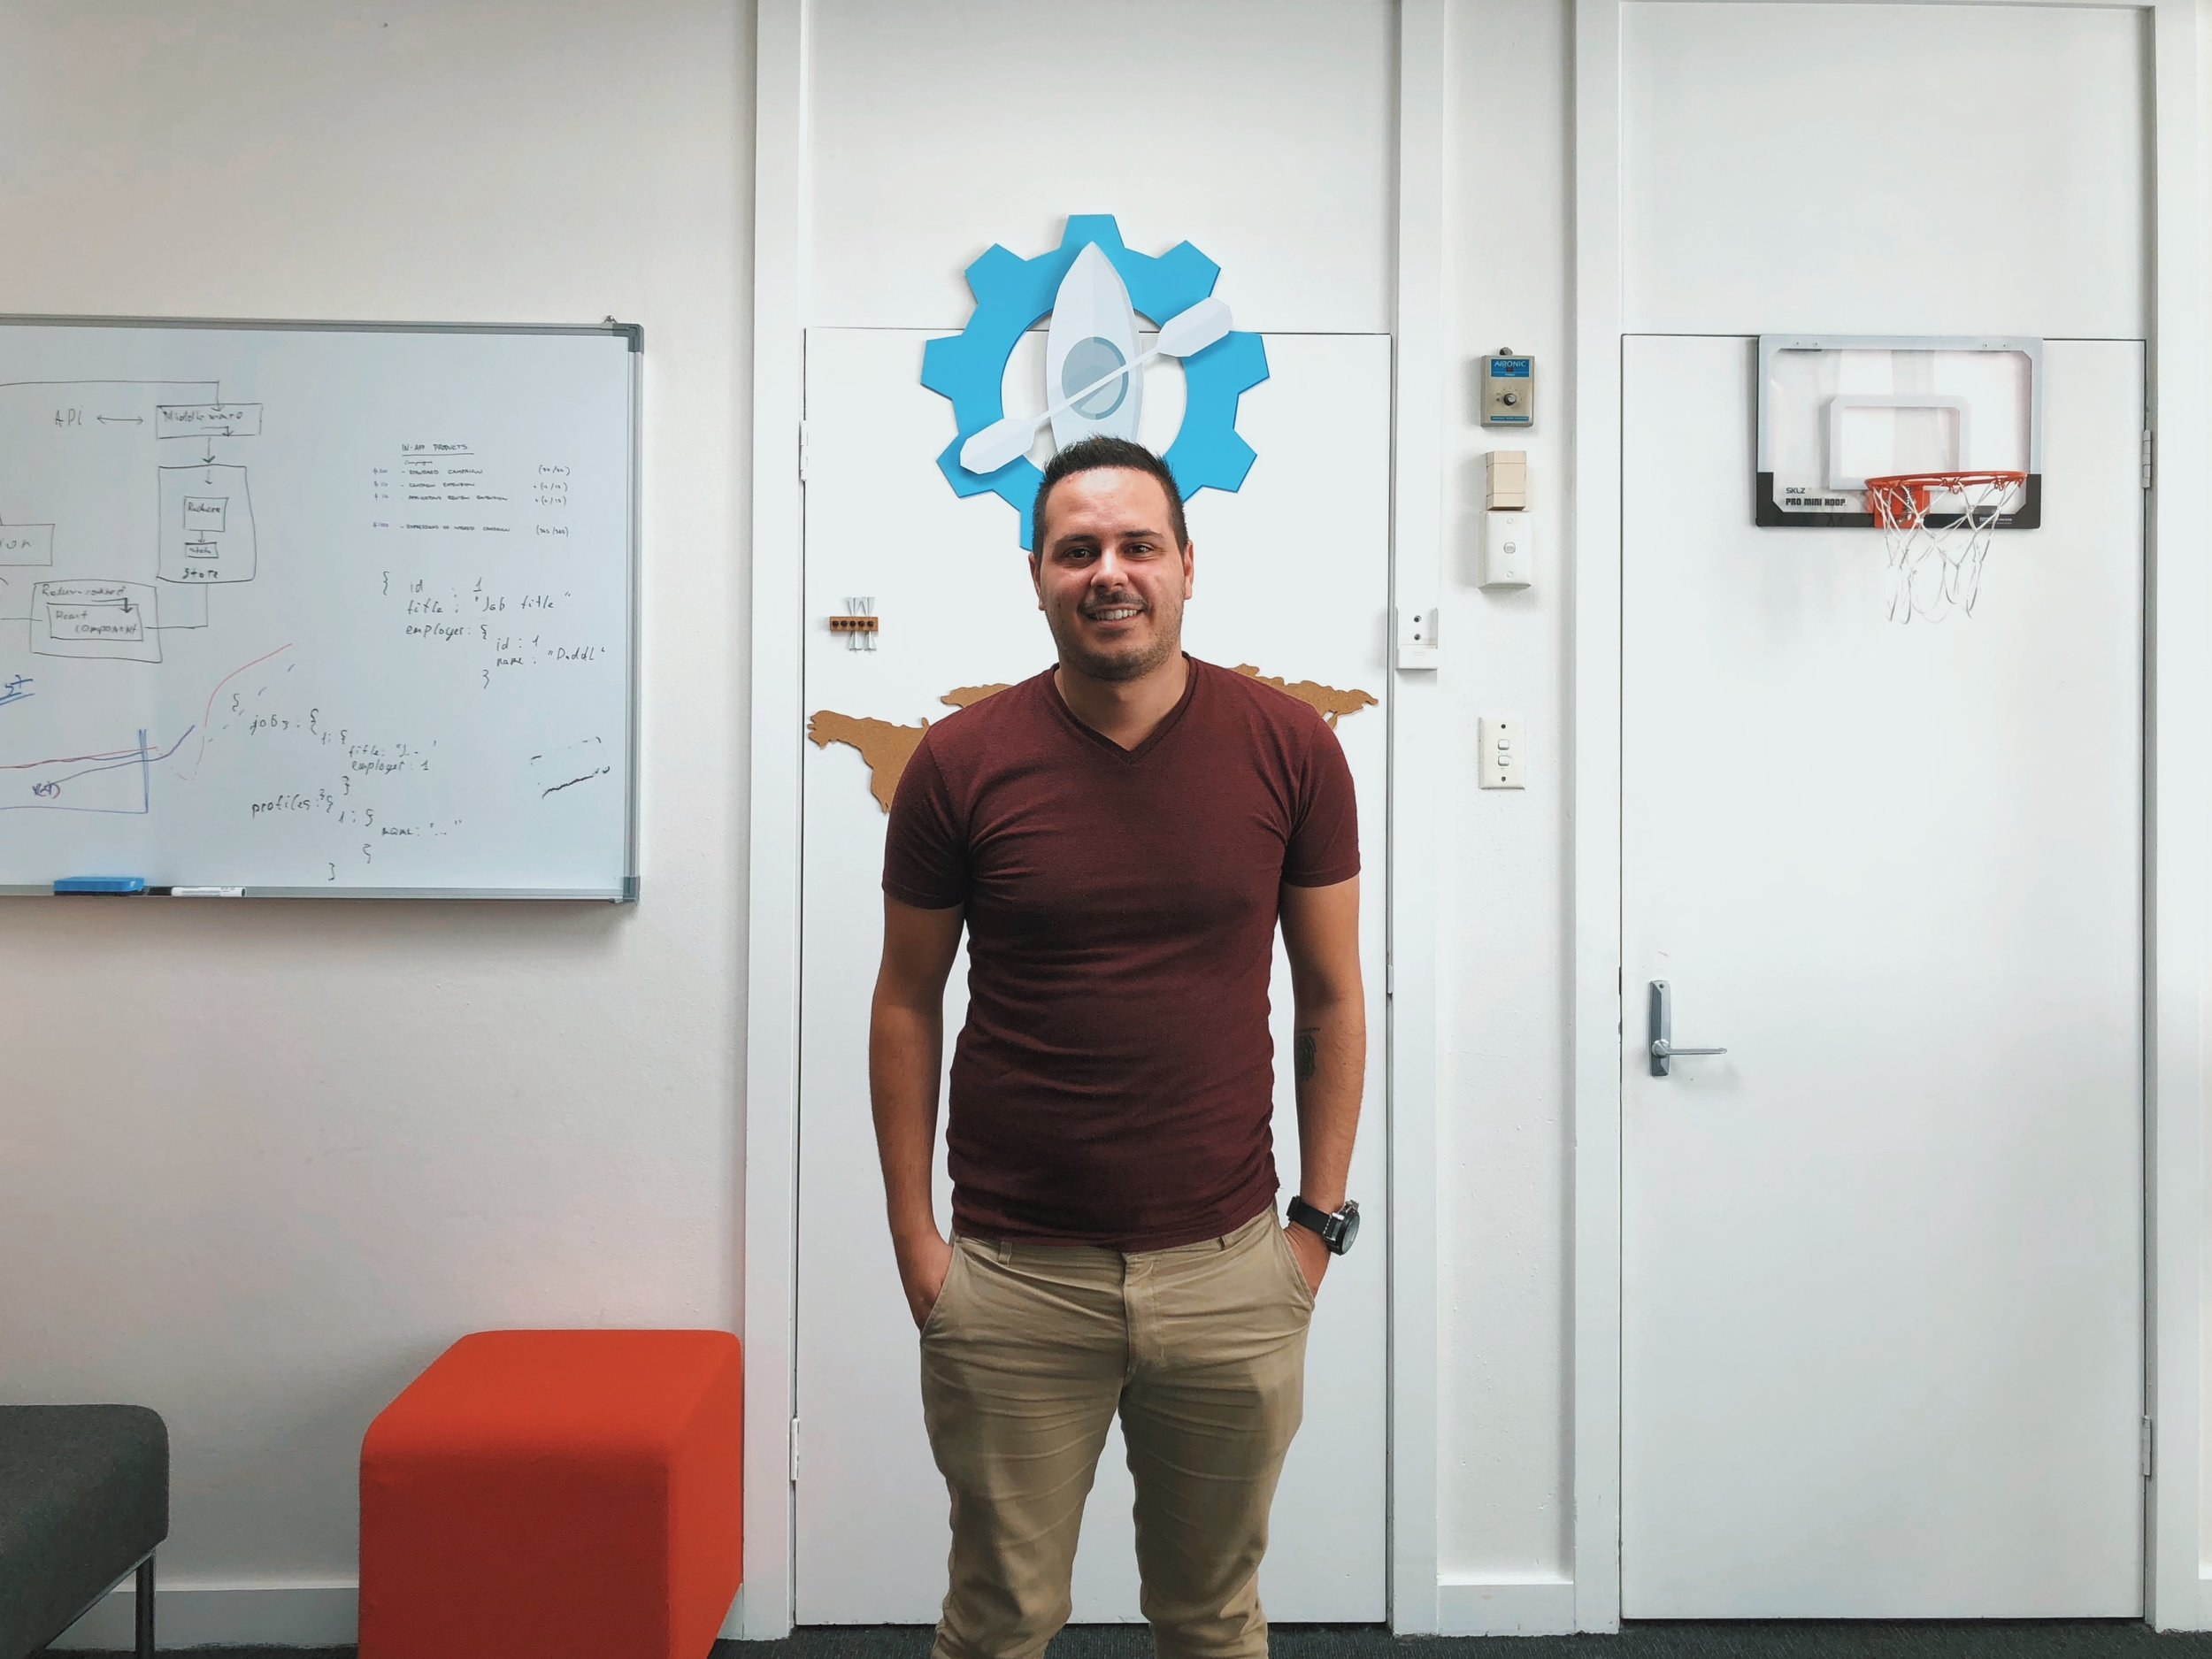 Panagiotis on a visit to our offices last month